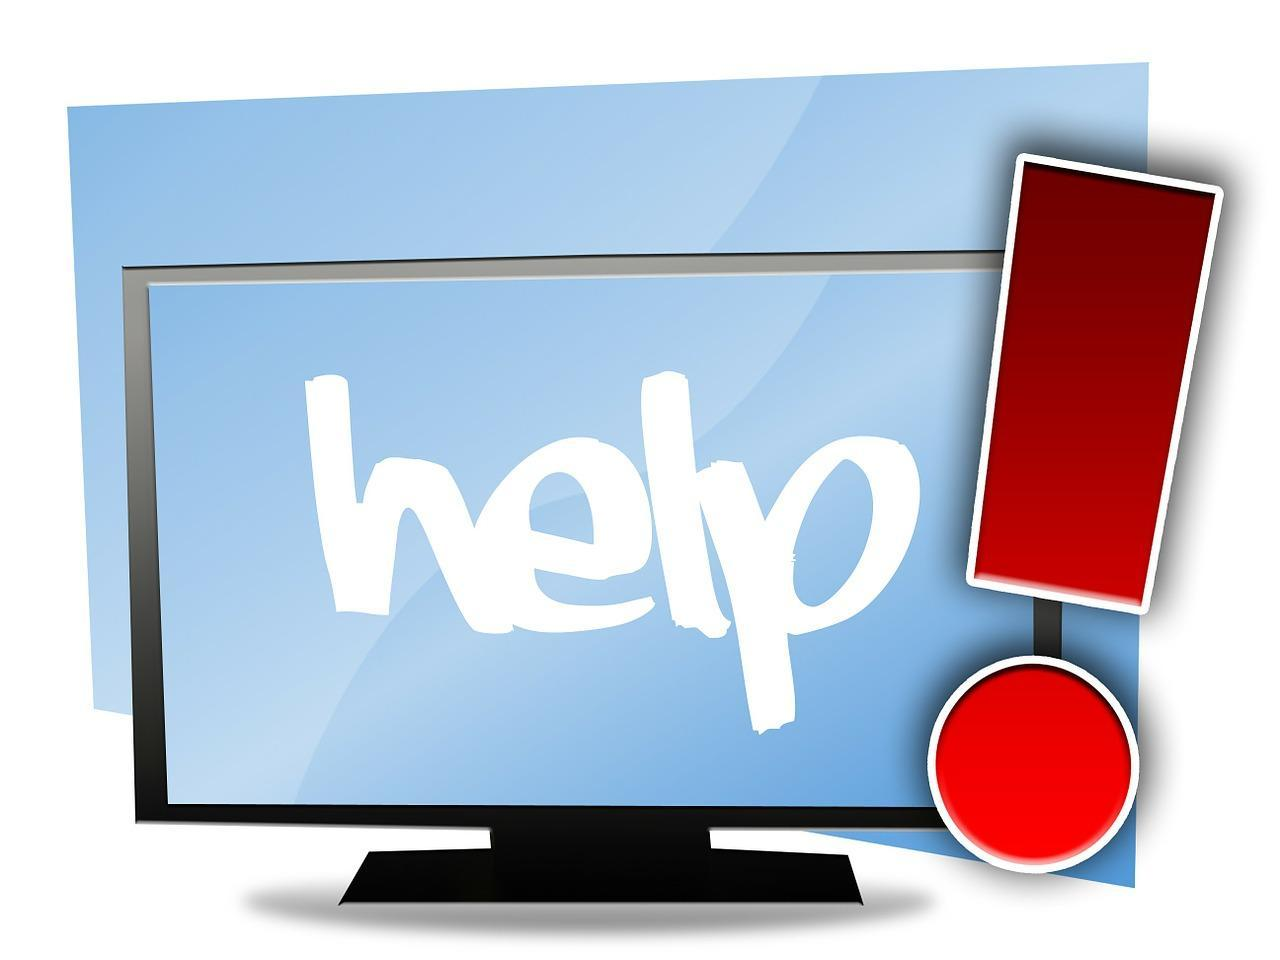 Request Technical Support From Home During School Closure Image